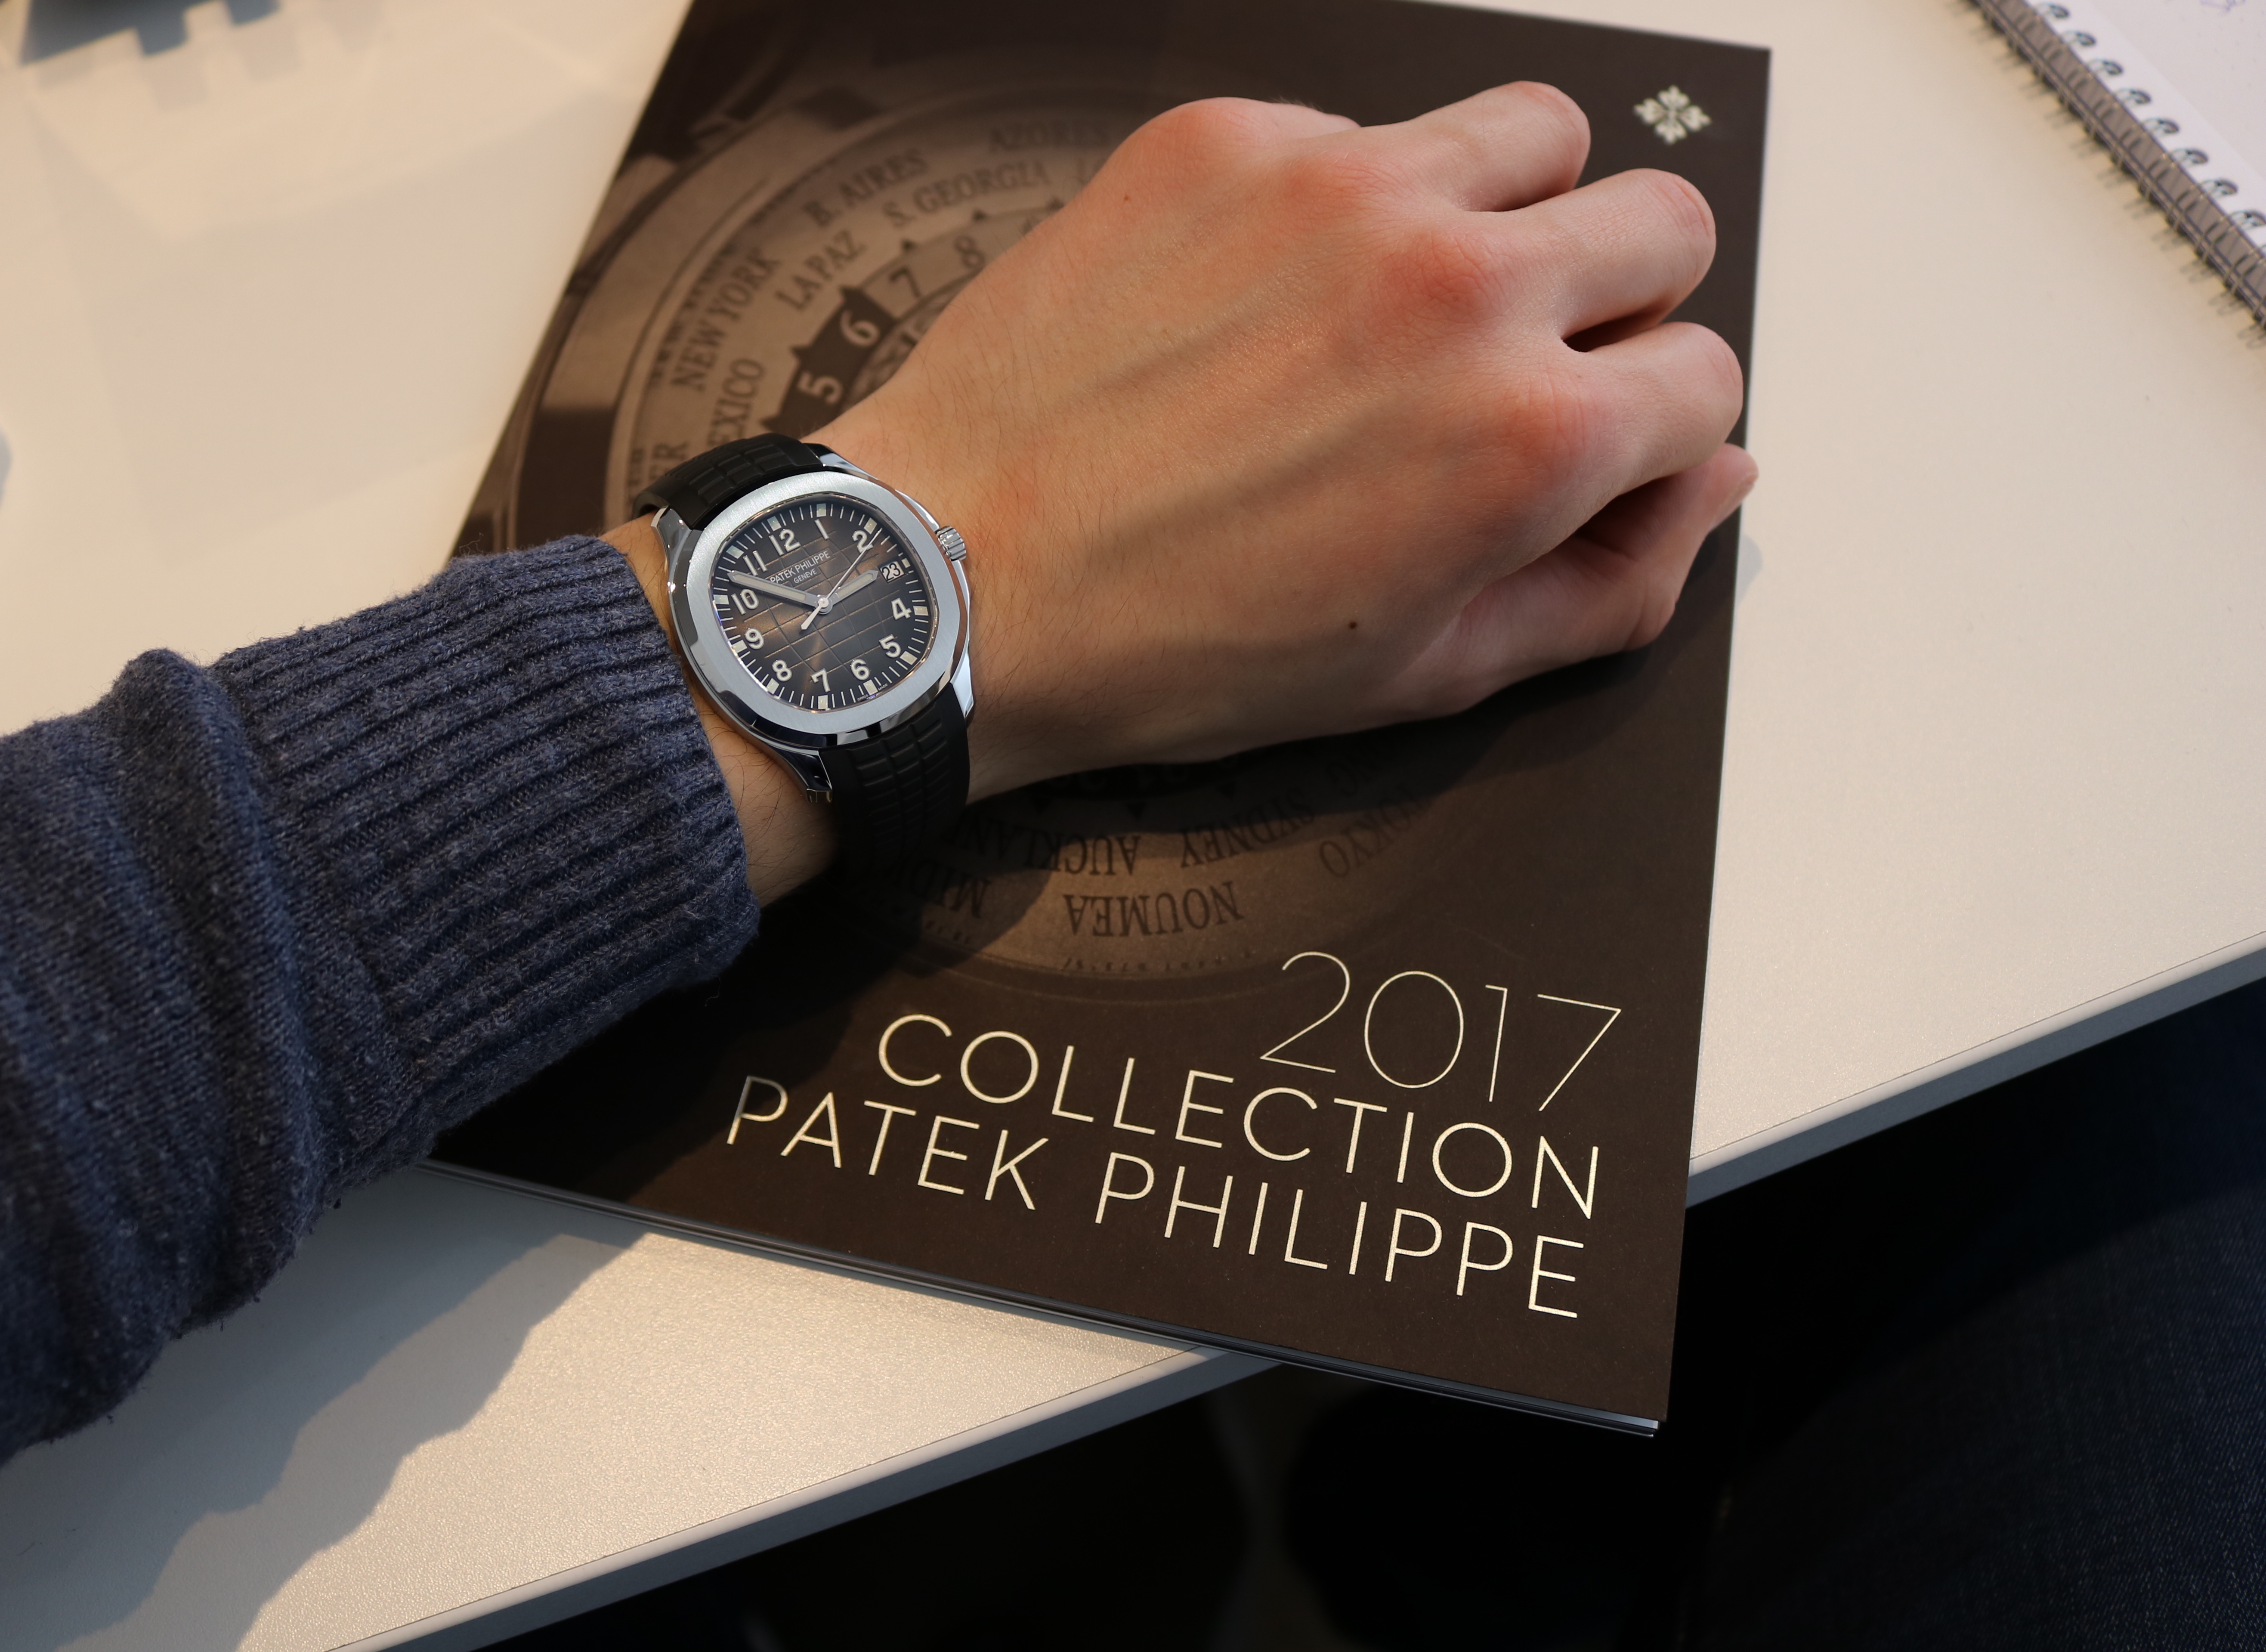 One Watch Collection Dilemma Patek Philippe 5167a 001 Watchanist